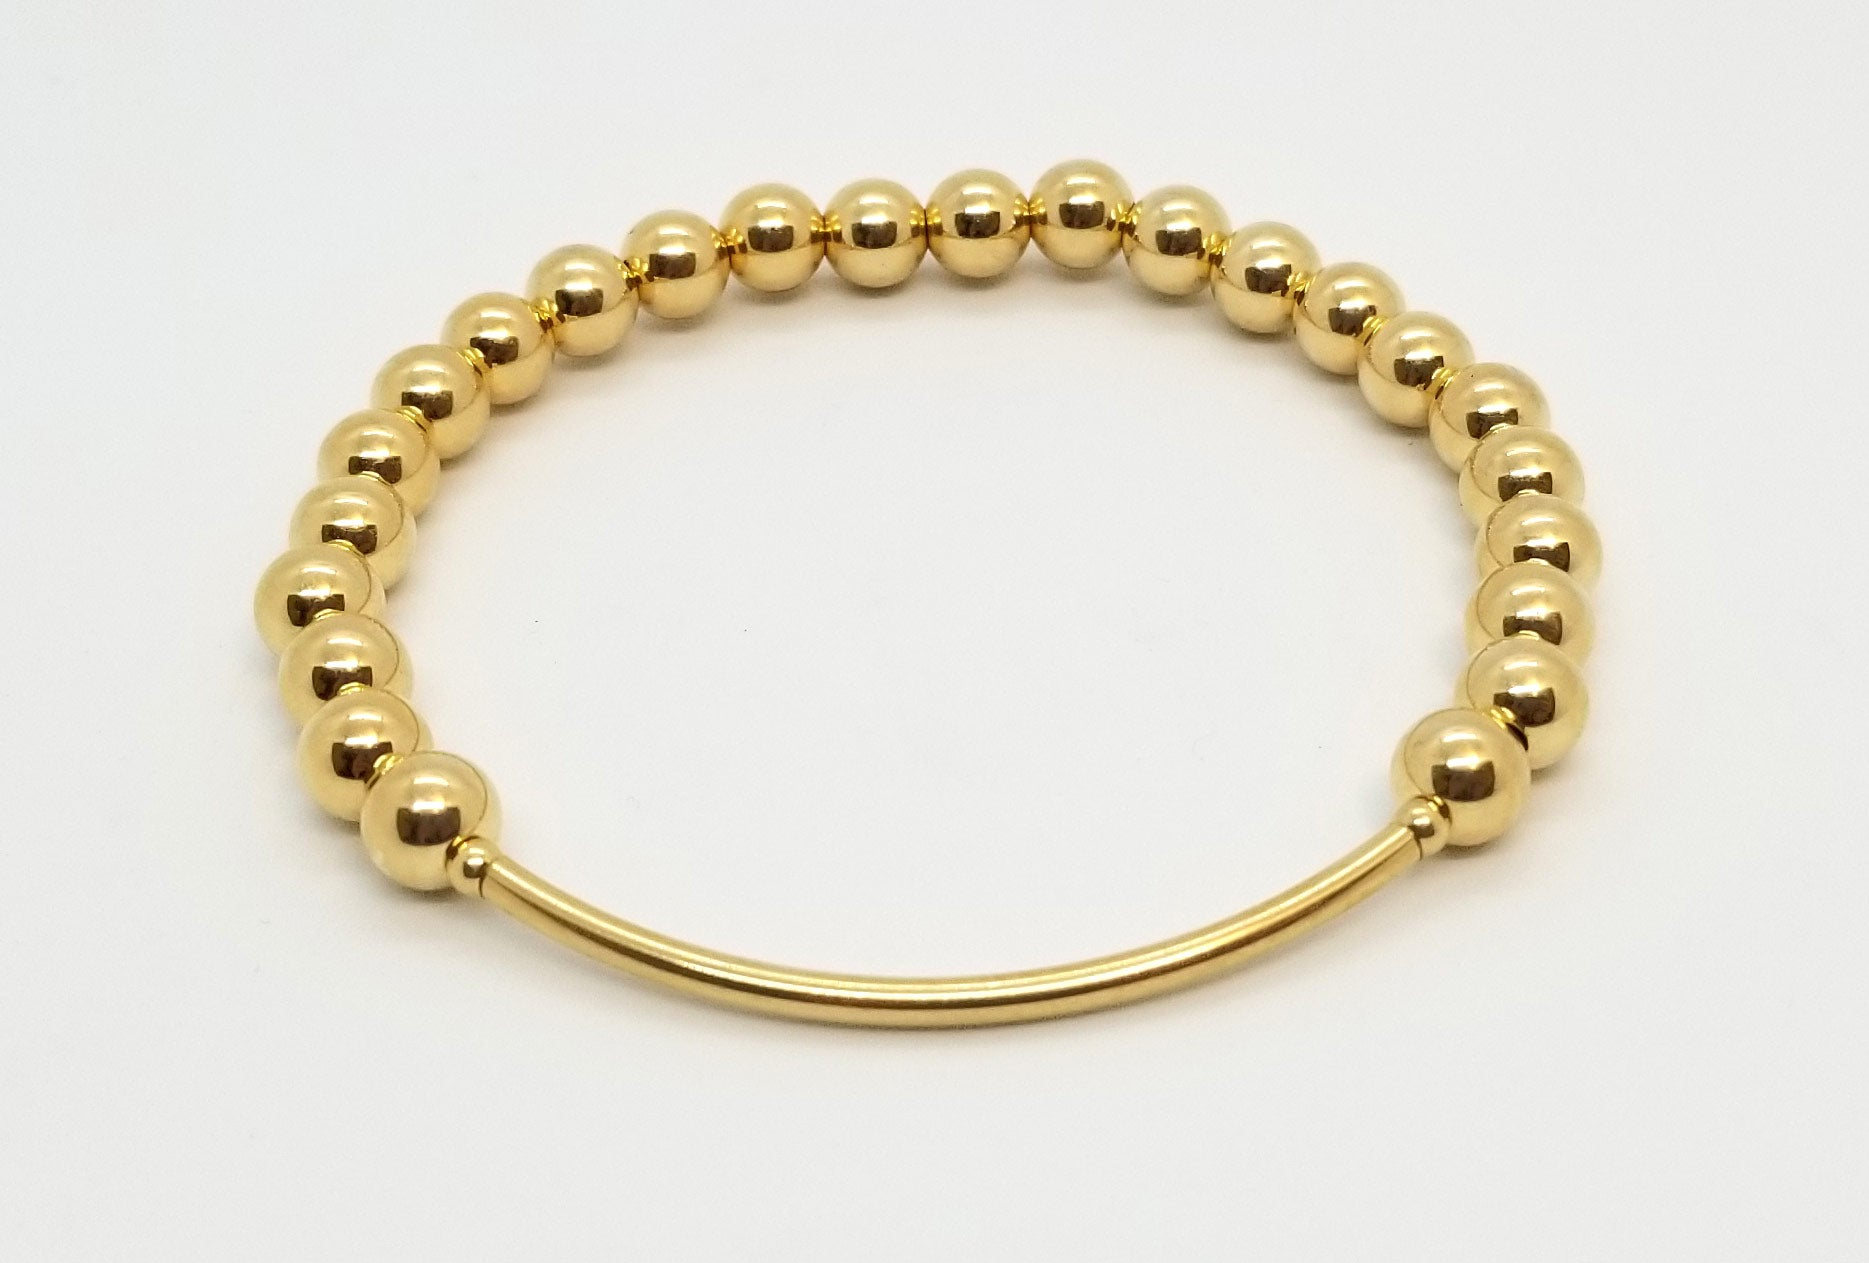 6mm Gold Bead and Bar